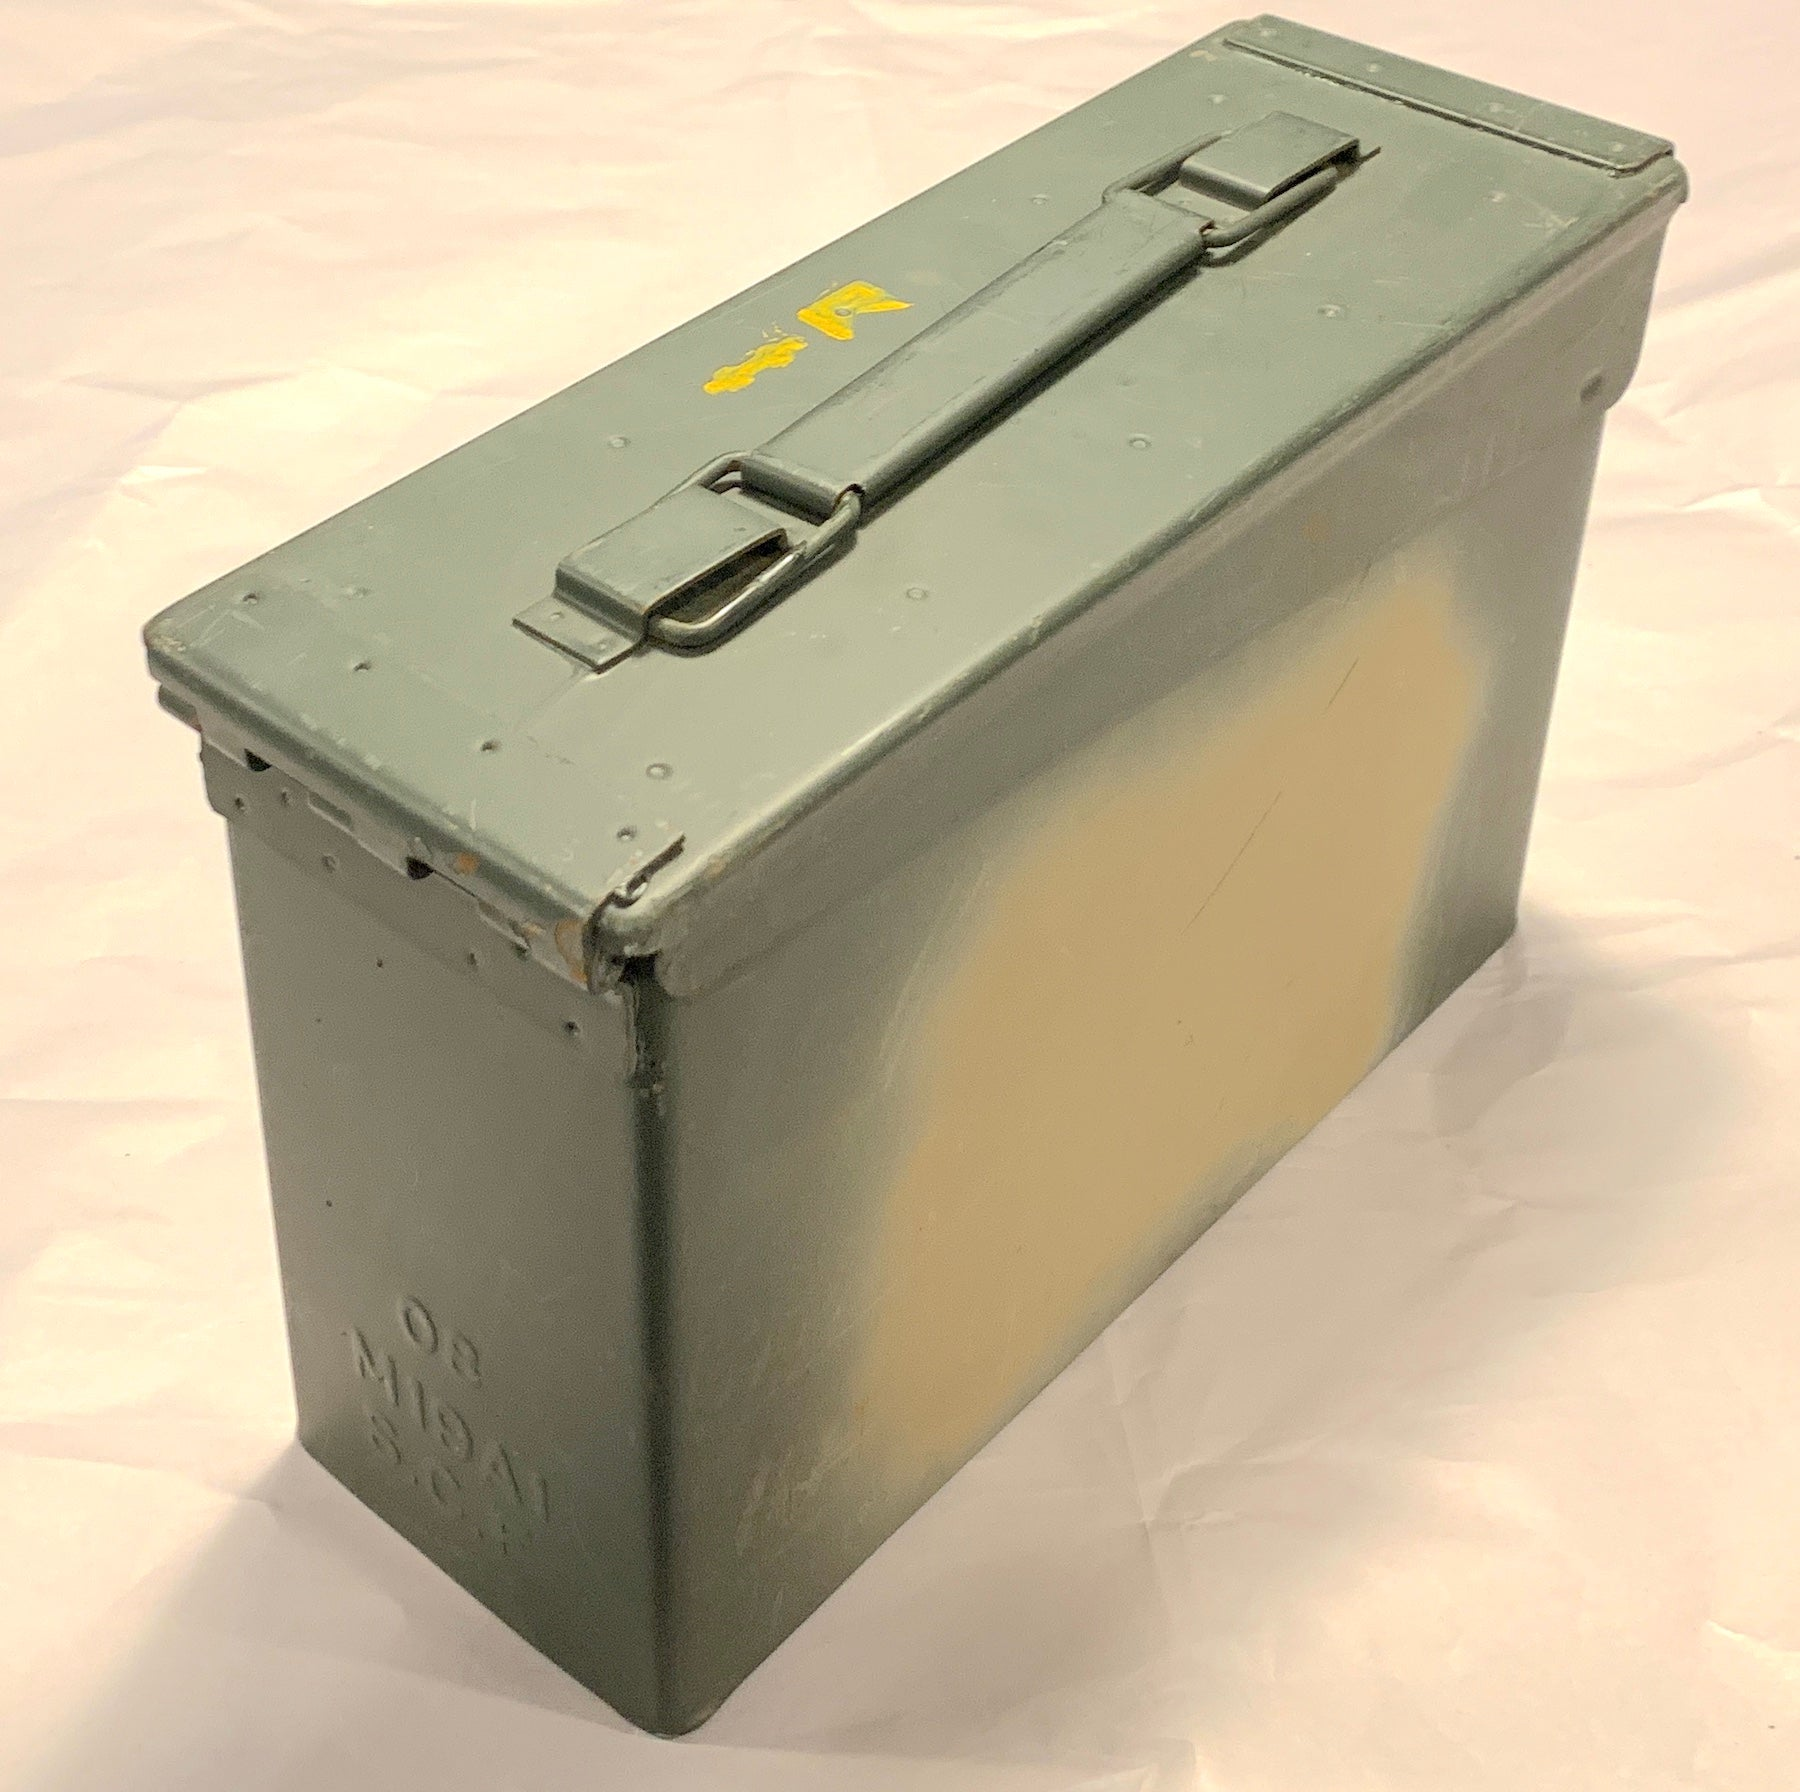 USED GRADE A - U.S.G.I. M19A1 .30 Caliber Ammo Cans - Case of 10